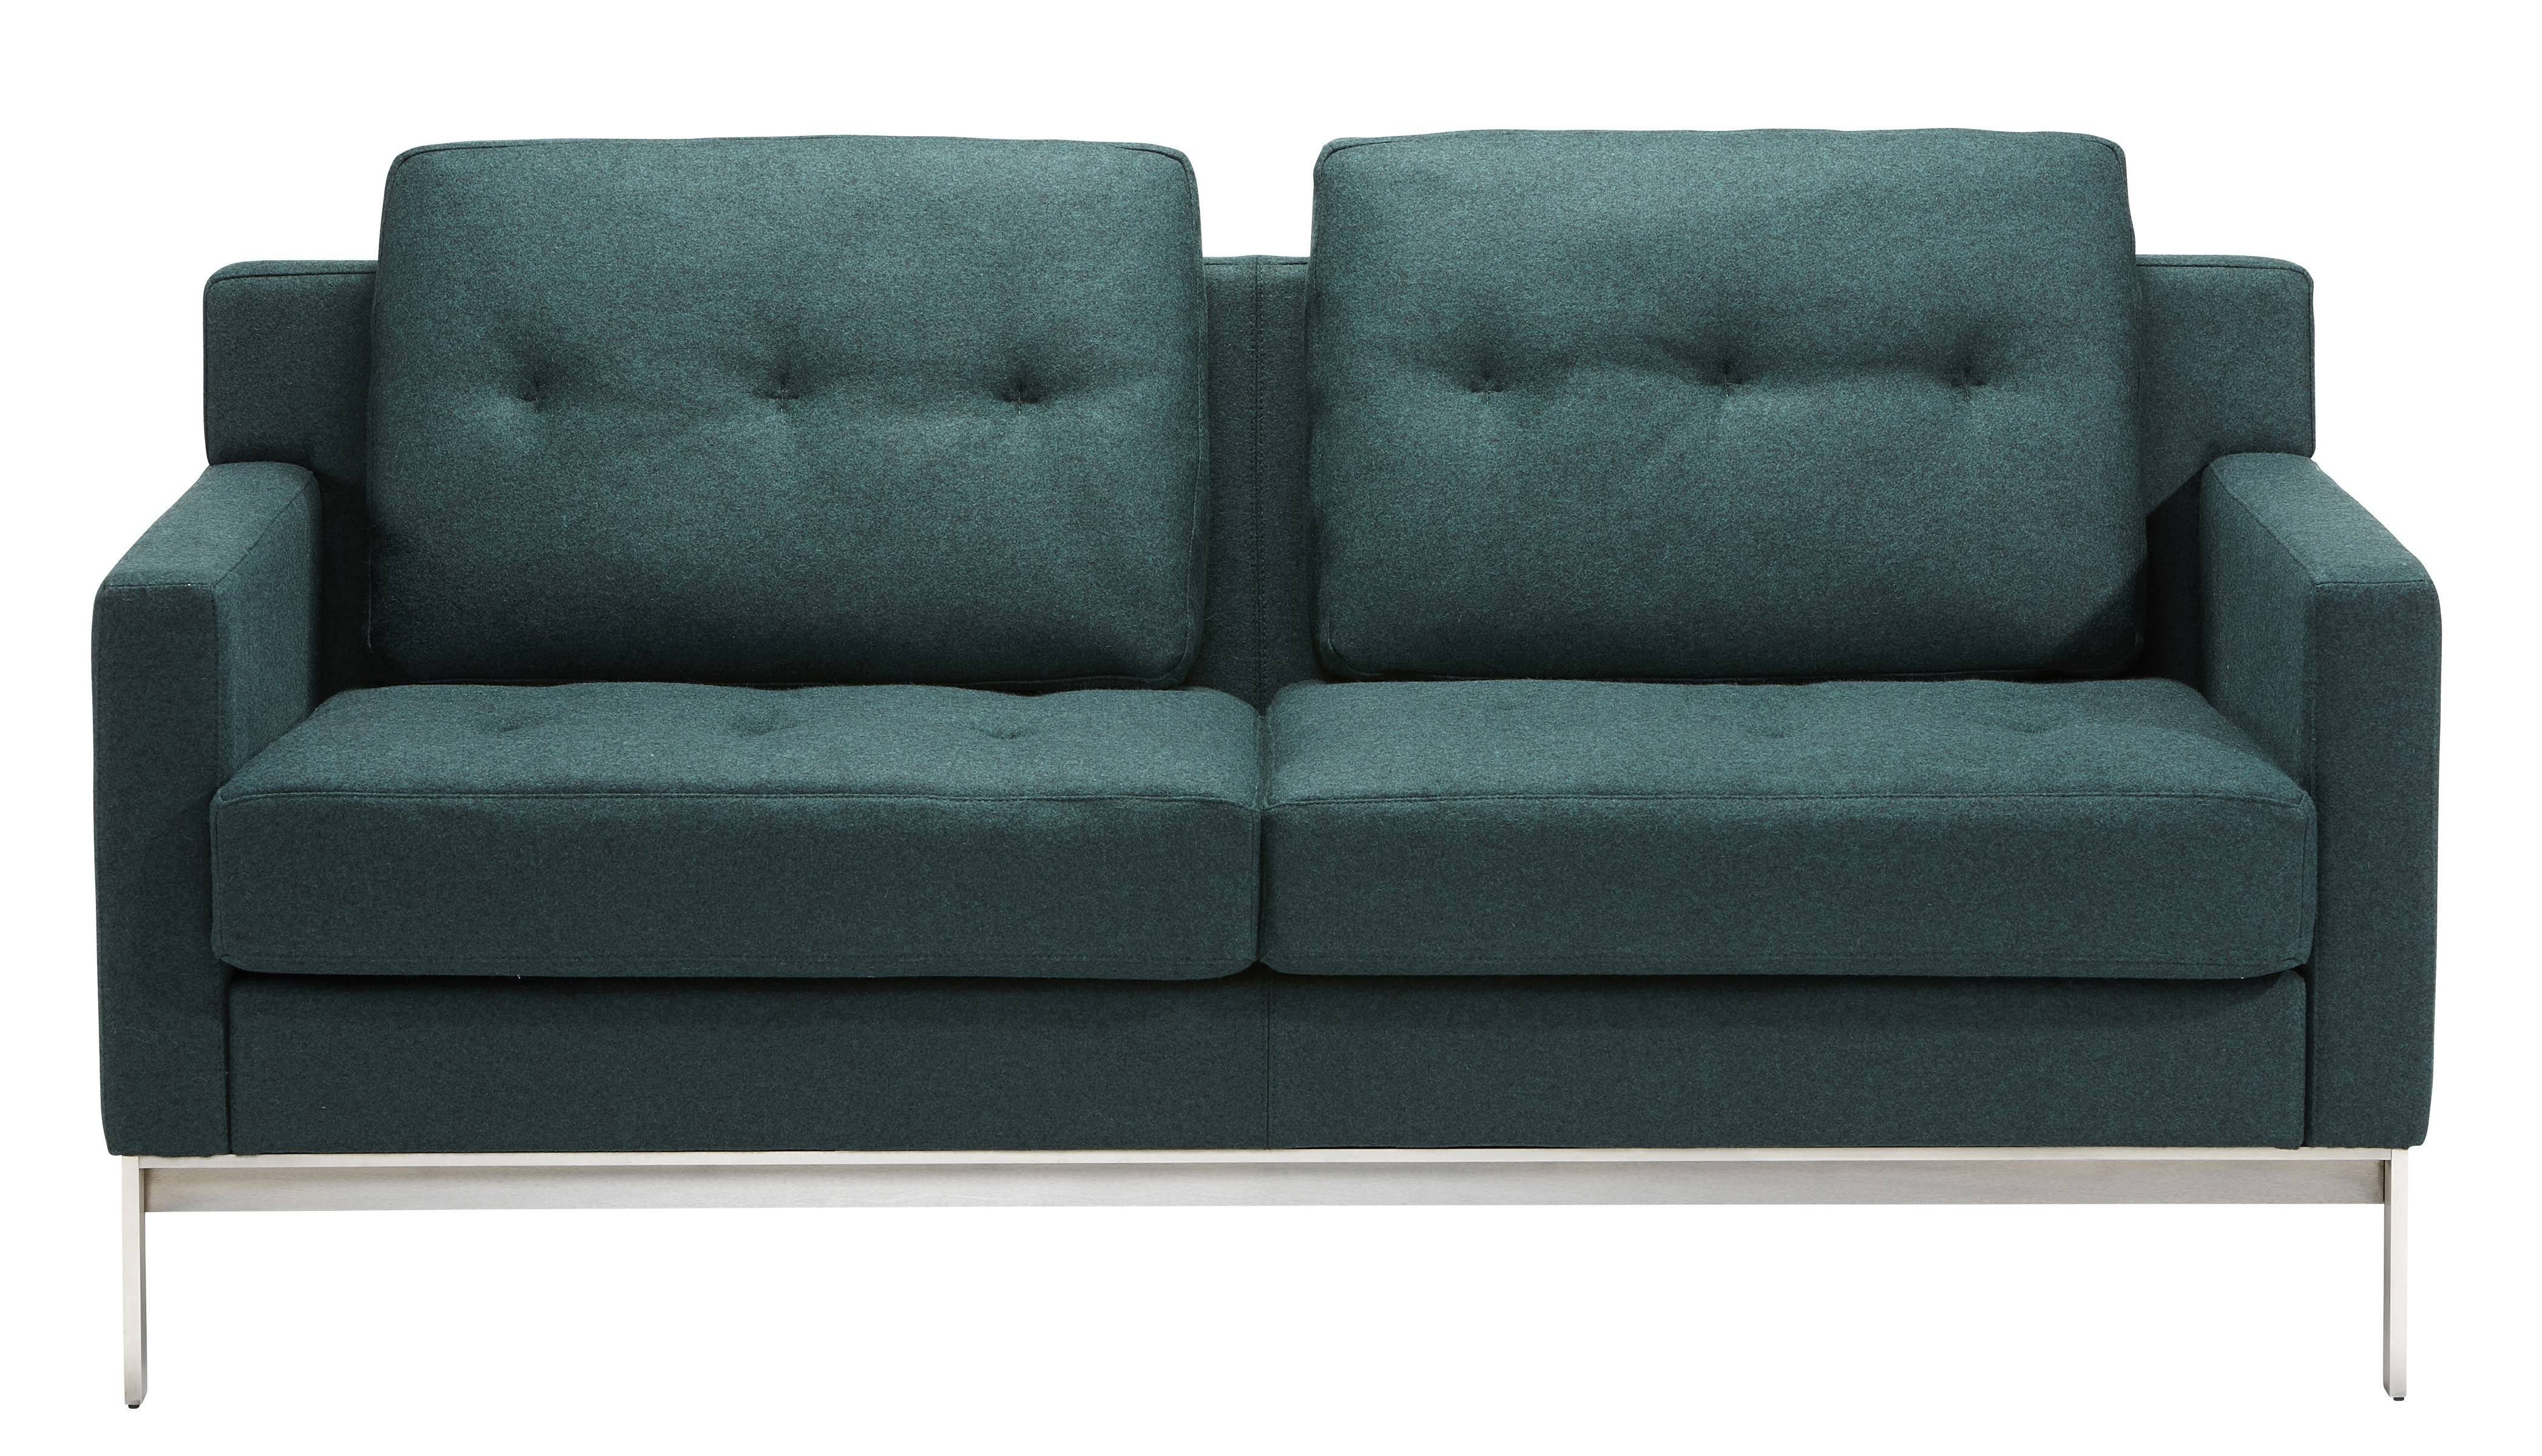 Millbrae Lifestyle Lounge Collaborative Seating | Coalesse for 2 Seat Sectional Sofas (Image 19 of 30)